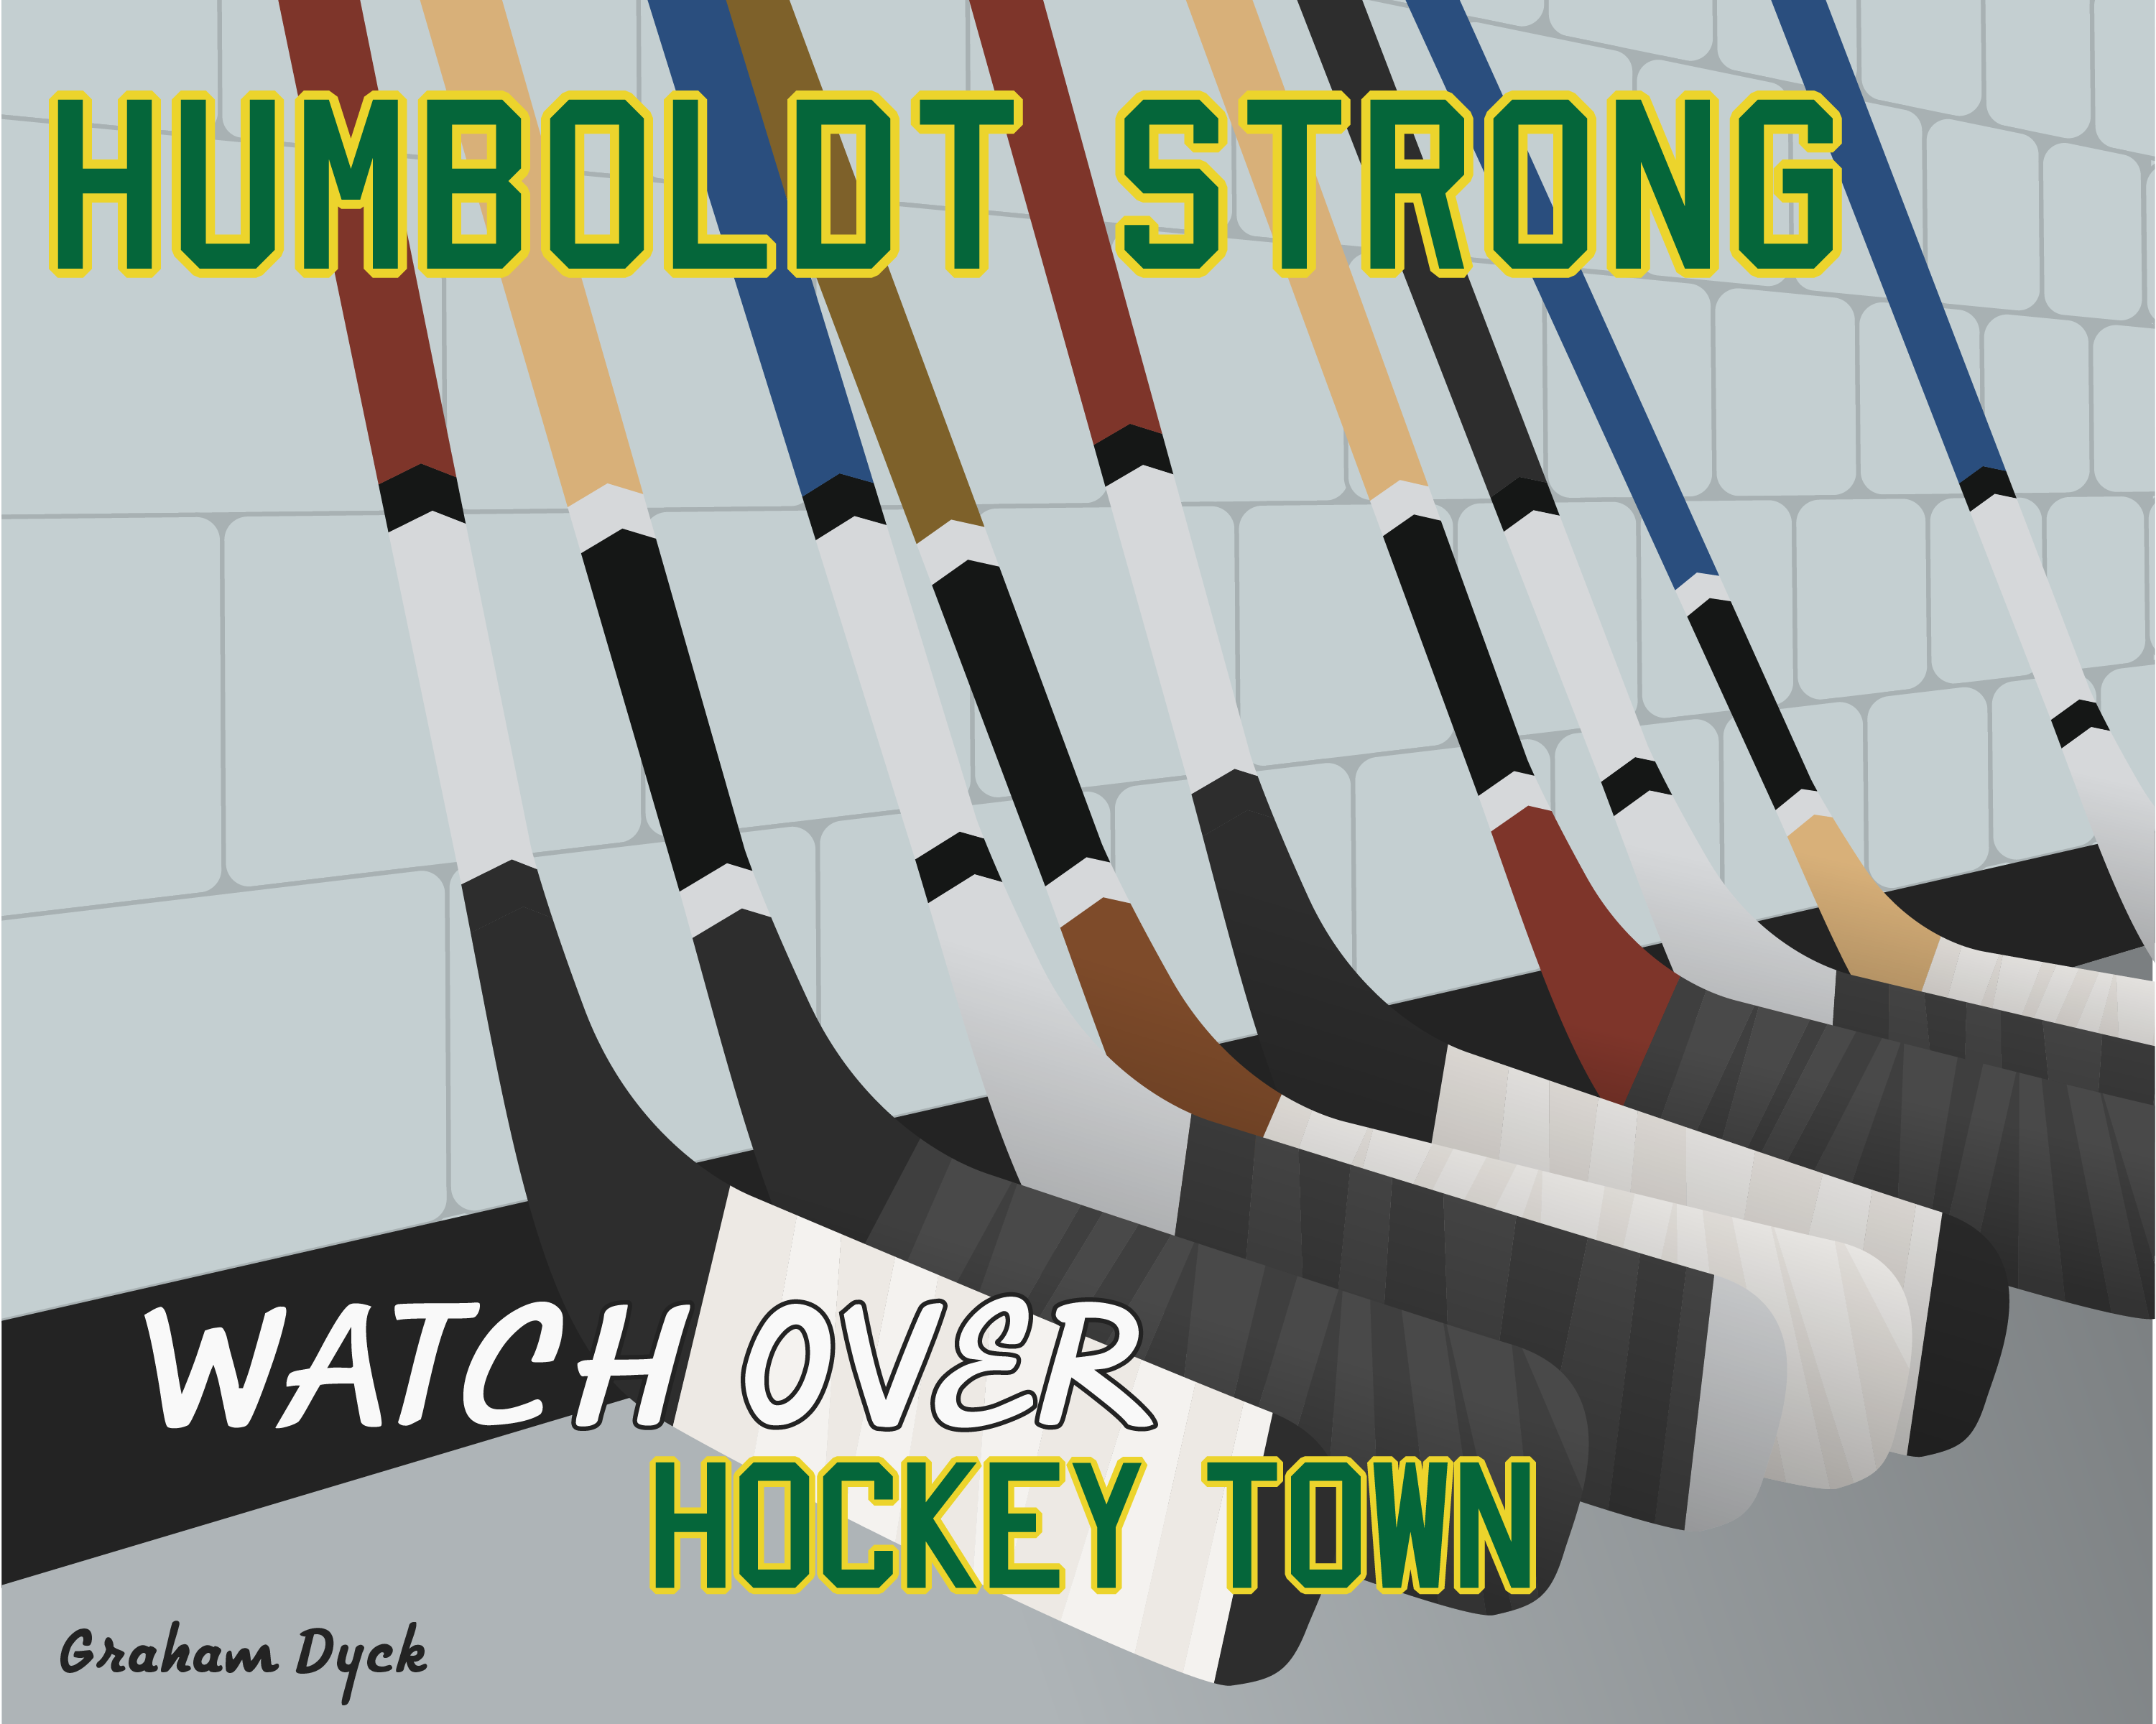 Humboldt Strong Watch Over Hockey Town